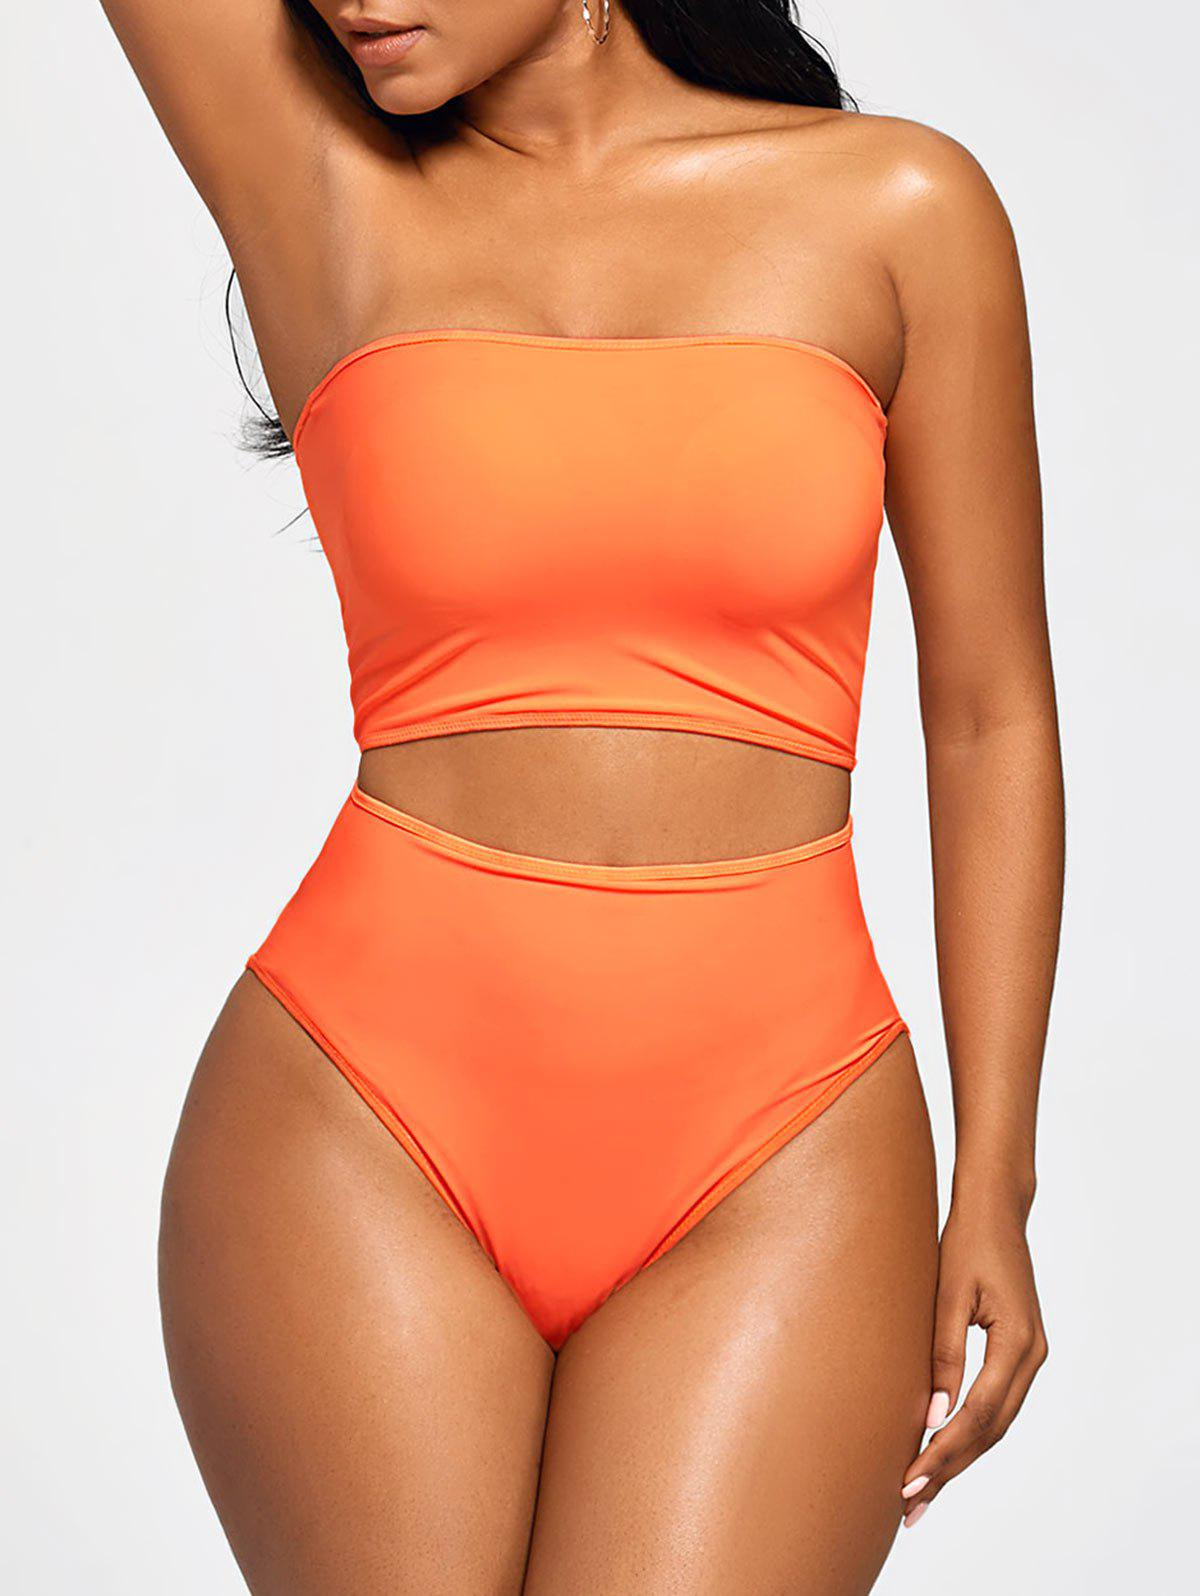 High Waist Strapless Bandeau BikiniWOMEN<br><br>Size: S; Color: MANDARIN; Swimwear Type: Bikini; Gender: For Women; Material: Polyester,Spandex; Bra Style: Padded; Support Type: Wire Free; Neckline: Strapless; Pattern Type: Solid Color; Waist: High Waisted; Elasticity: Elastic; Weight: 0.2500kg; Package Contents: 1 x Crop Top  1 x Briefs;